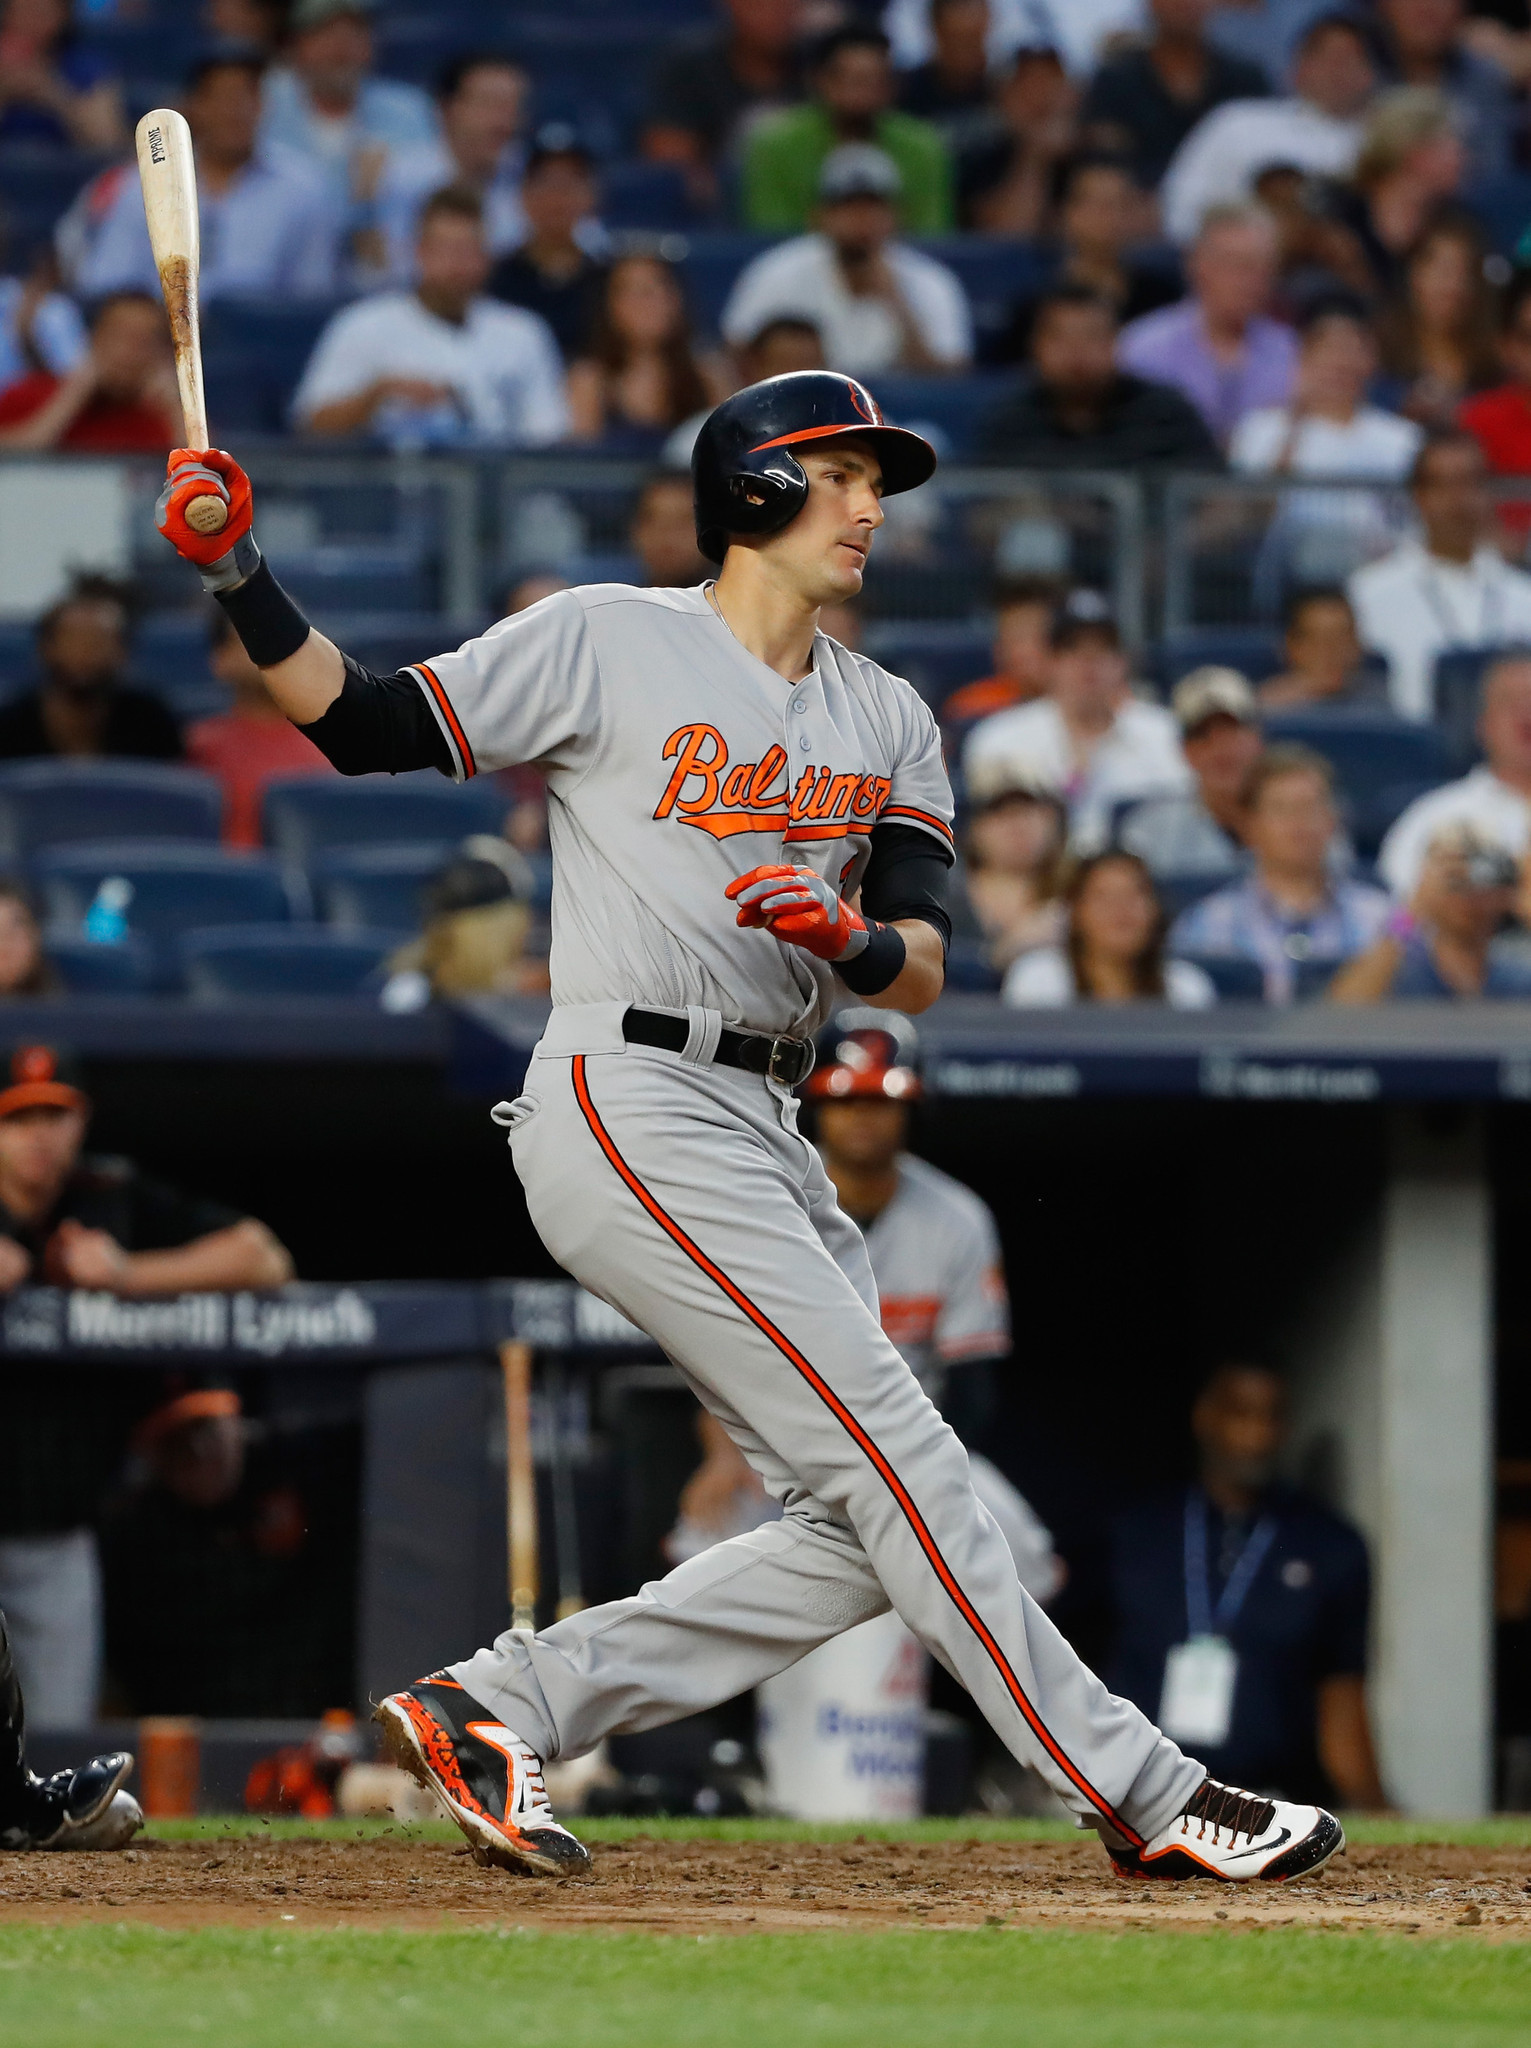 Bal-orioles-recap-birds-stifled-again-blanked-5-0-by-yankees-for-fourth-straight-loss-20160720